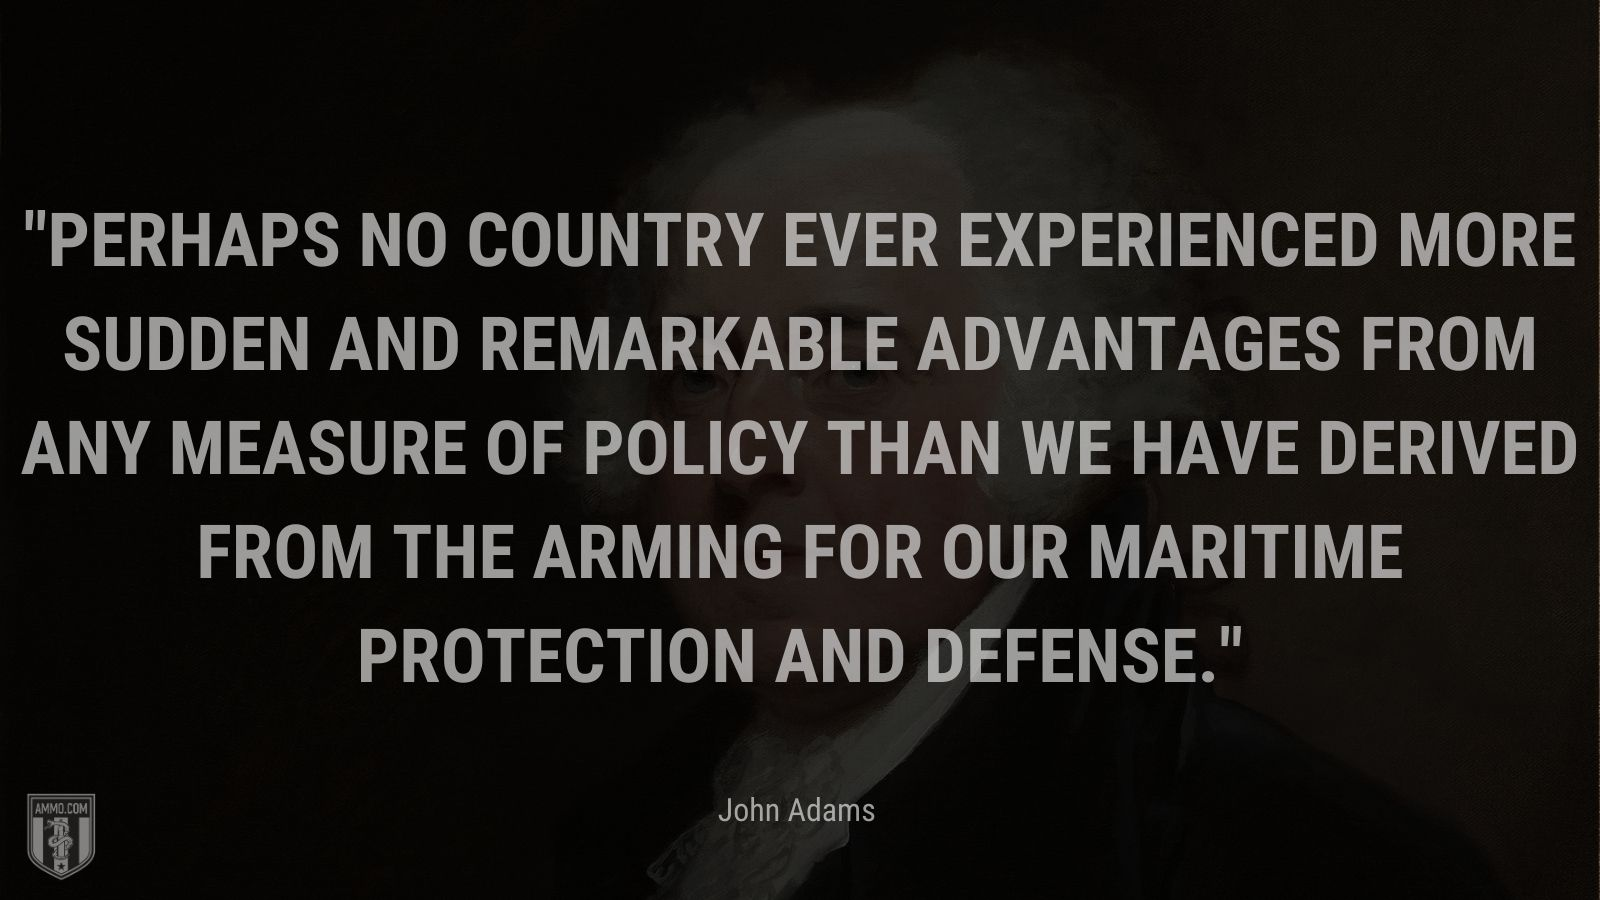 """""""Perhaps no country ever experienced more sudden and remarkable advantages from any measure of policy than we have derived from the arming for our maritime protection and defense."""" - John Adams"""